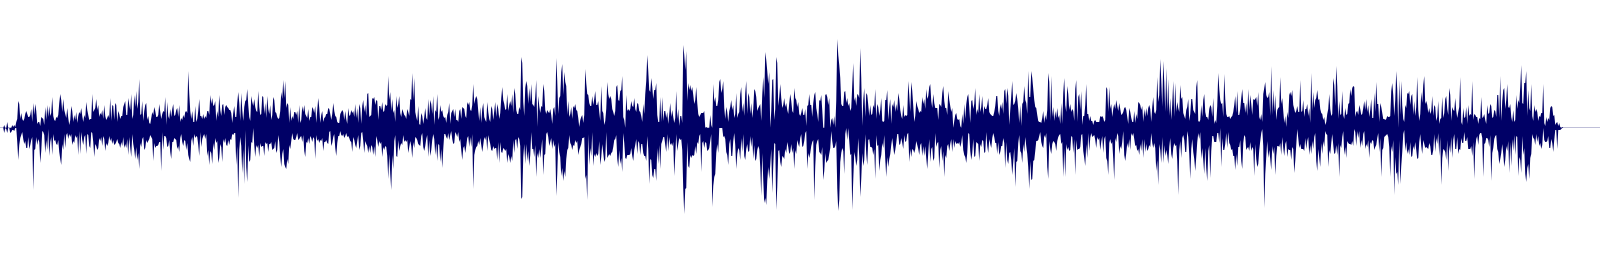 waveform of track #144781